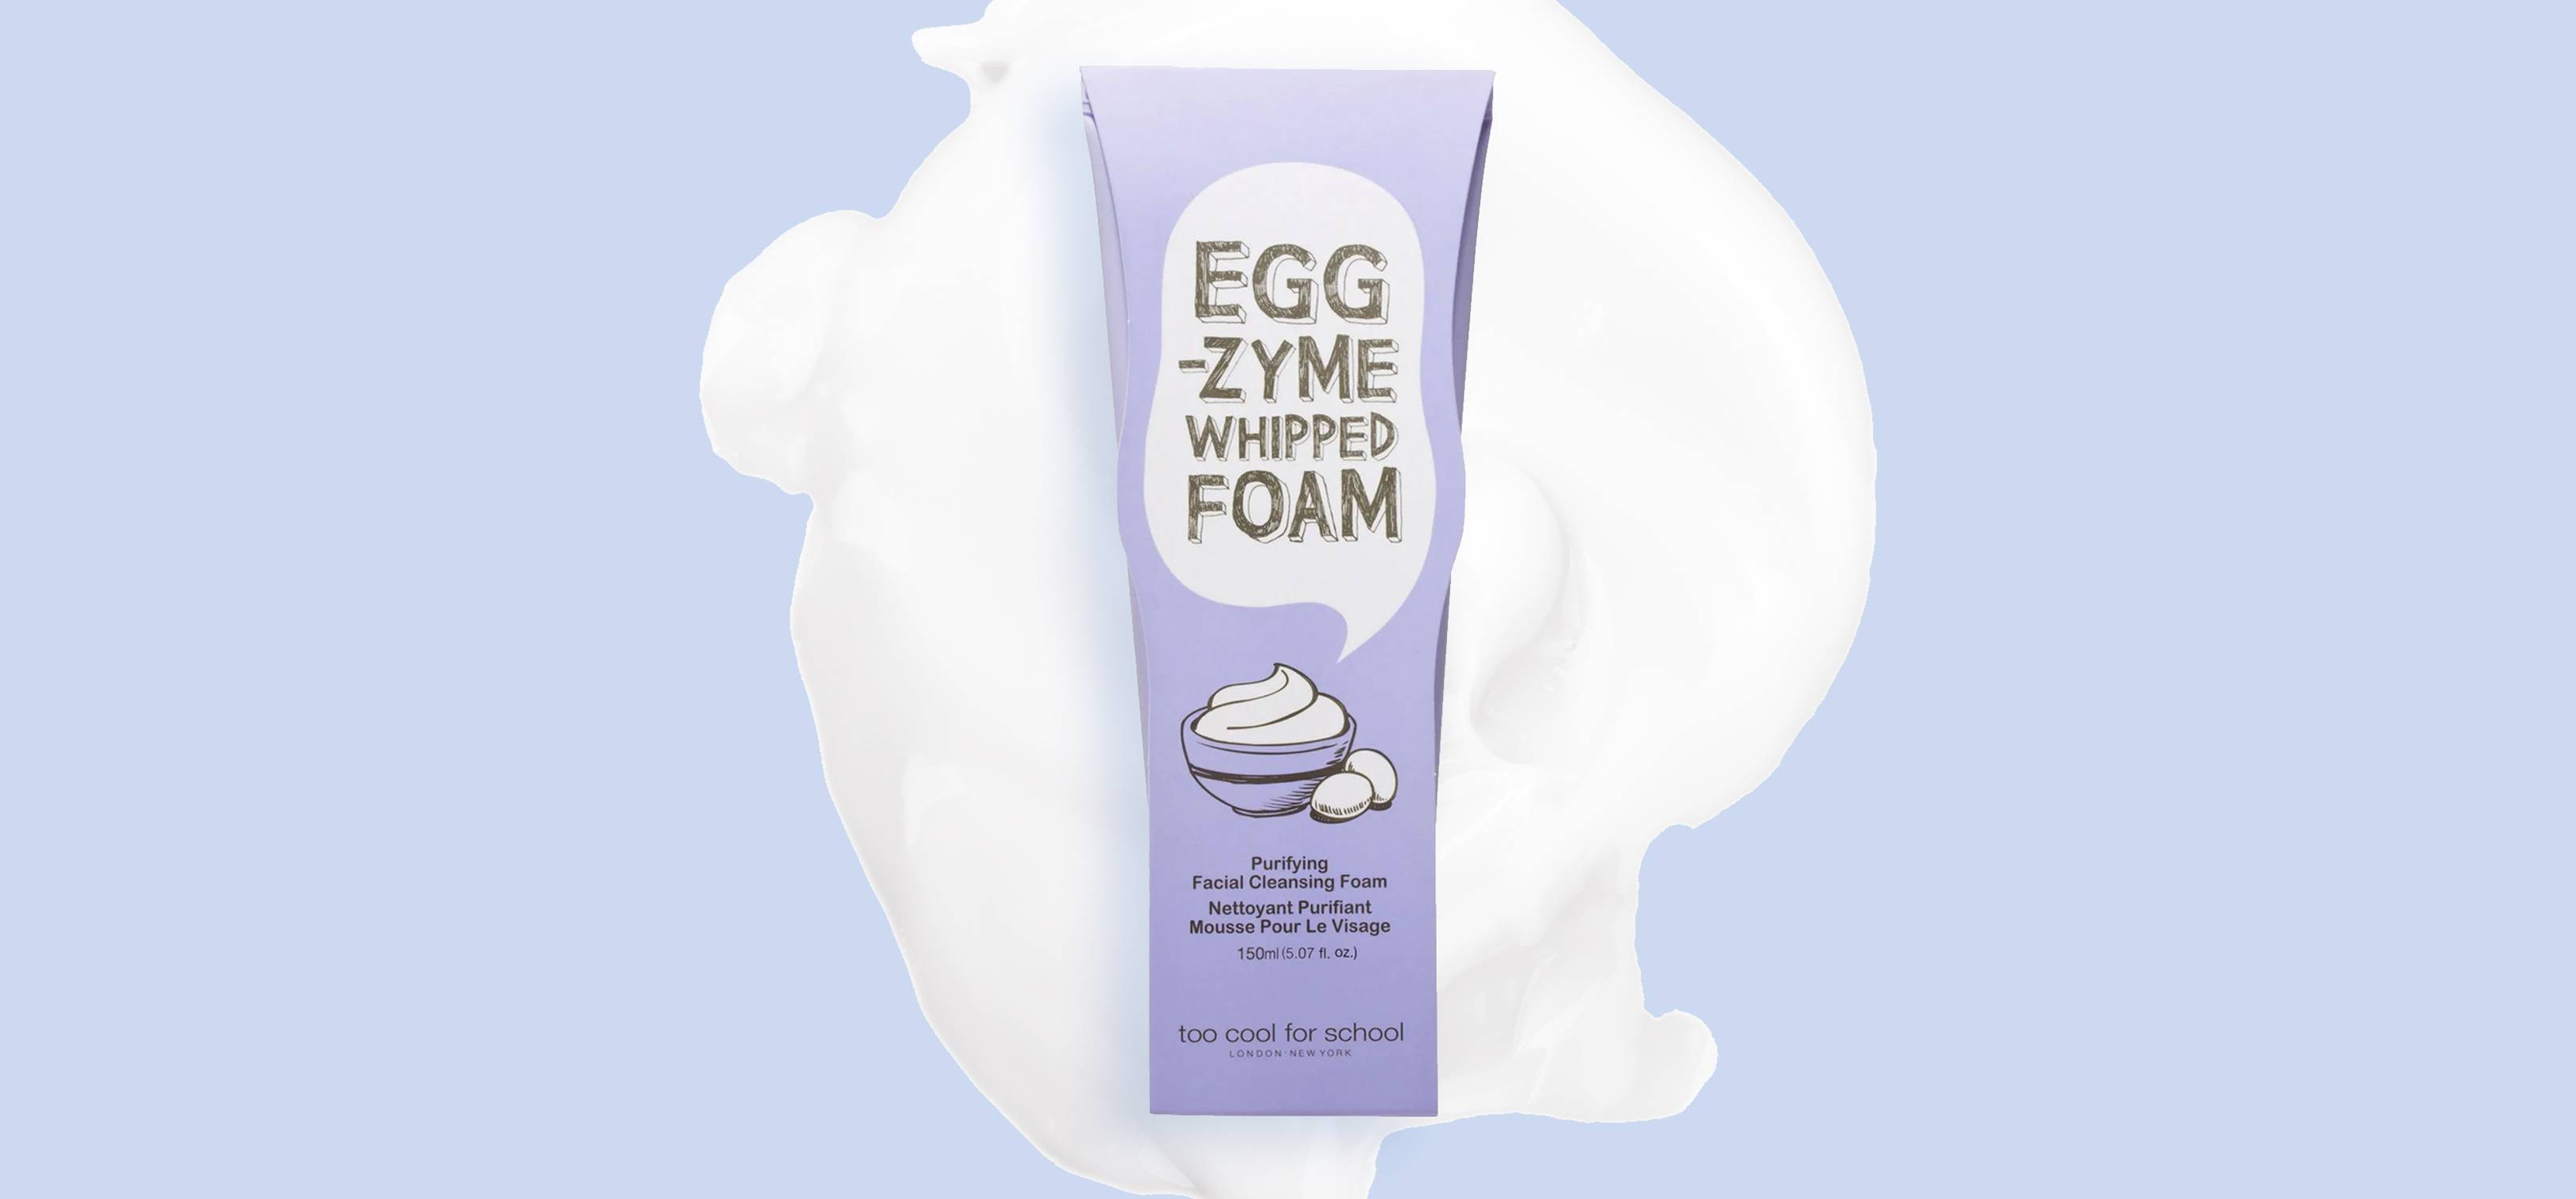 This 5-star egg cleanser keeps selling out because it's the first of its kind in the UK